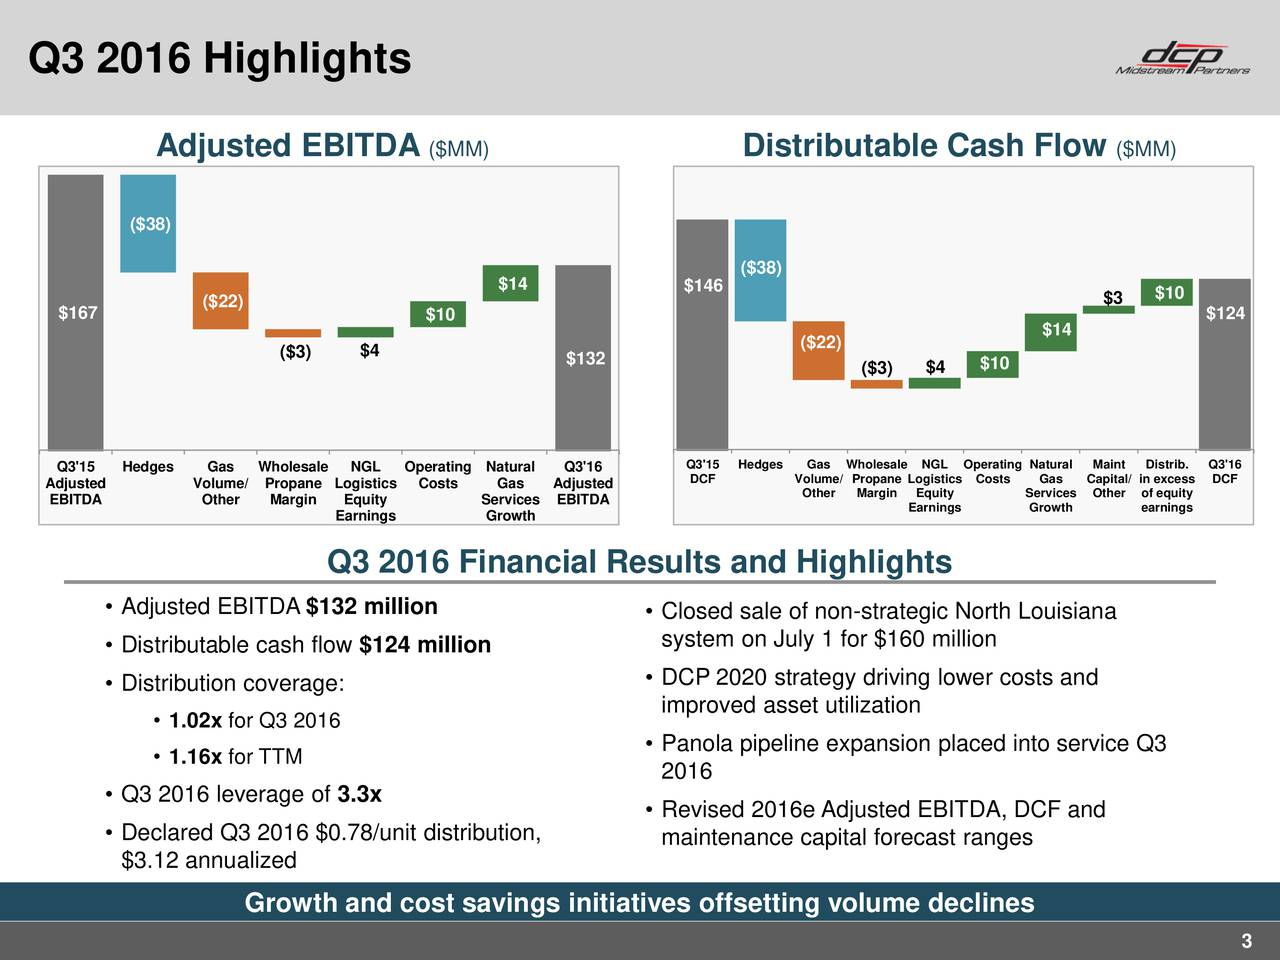 Adjusted EBITDA ($MM) Distributable Cash Flow ($MM) ($38) ($38) $14 $146 $10 ($22) $3 $167 $10 $124 ($22) $14 ($3) $4 $132 ($3) $4 $10 Q3'15 Hedges Gas Wholesale NGL OperatingNatural Q3'16 Q3'15 Hedges Gas WholesalNGL Operating NaturMaint Distrib.Q3'16 Adjusted Volume/ Propane Logistics Costs Gas Adjusted DCF Volume/ Propane LogisCosts Gas Capital/ in excDCF EBITDA Other Margin Equity Services EBITDA Other MarginEarnings SGrowthsOther earningsy Earnings Growth Q3 2016 Financial Results and Highlights Adjusted EBITDA $132 million  Closed sale of non-strategic North Louisiana Distributable cash flow $124 million system on July 1 for $160 million Distribution coverage:  DCP 2020 strategy driving lower costs and improved asset utilization 1.02x for Q3 2016 Panola pipeline expansion placed into service Q3 1.16x for TTM 2016 Q3 2016 leverage of 3.3x Revised 2016e Adjusted EBITDA, DCF and Declared Q3 2016 $0.78/unit distribution, maintenance capital forecast ranges $3.12 annualized Growth and cost savings initiatives offsetting volume declines 3